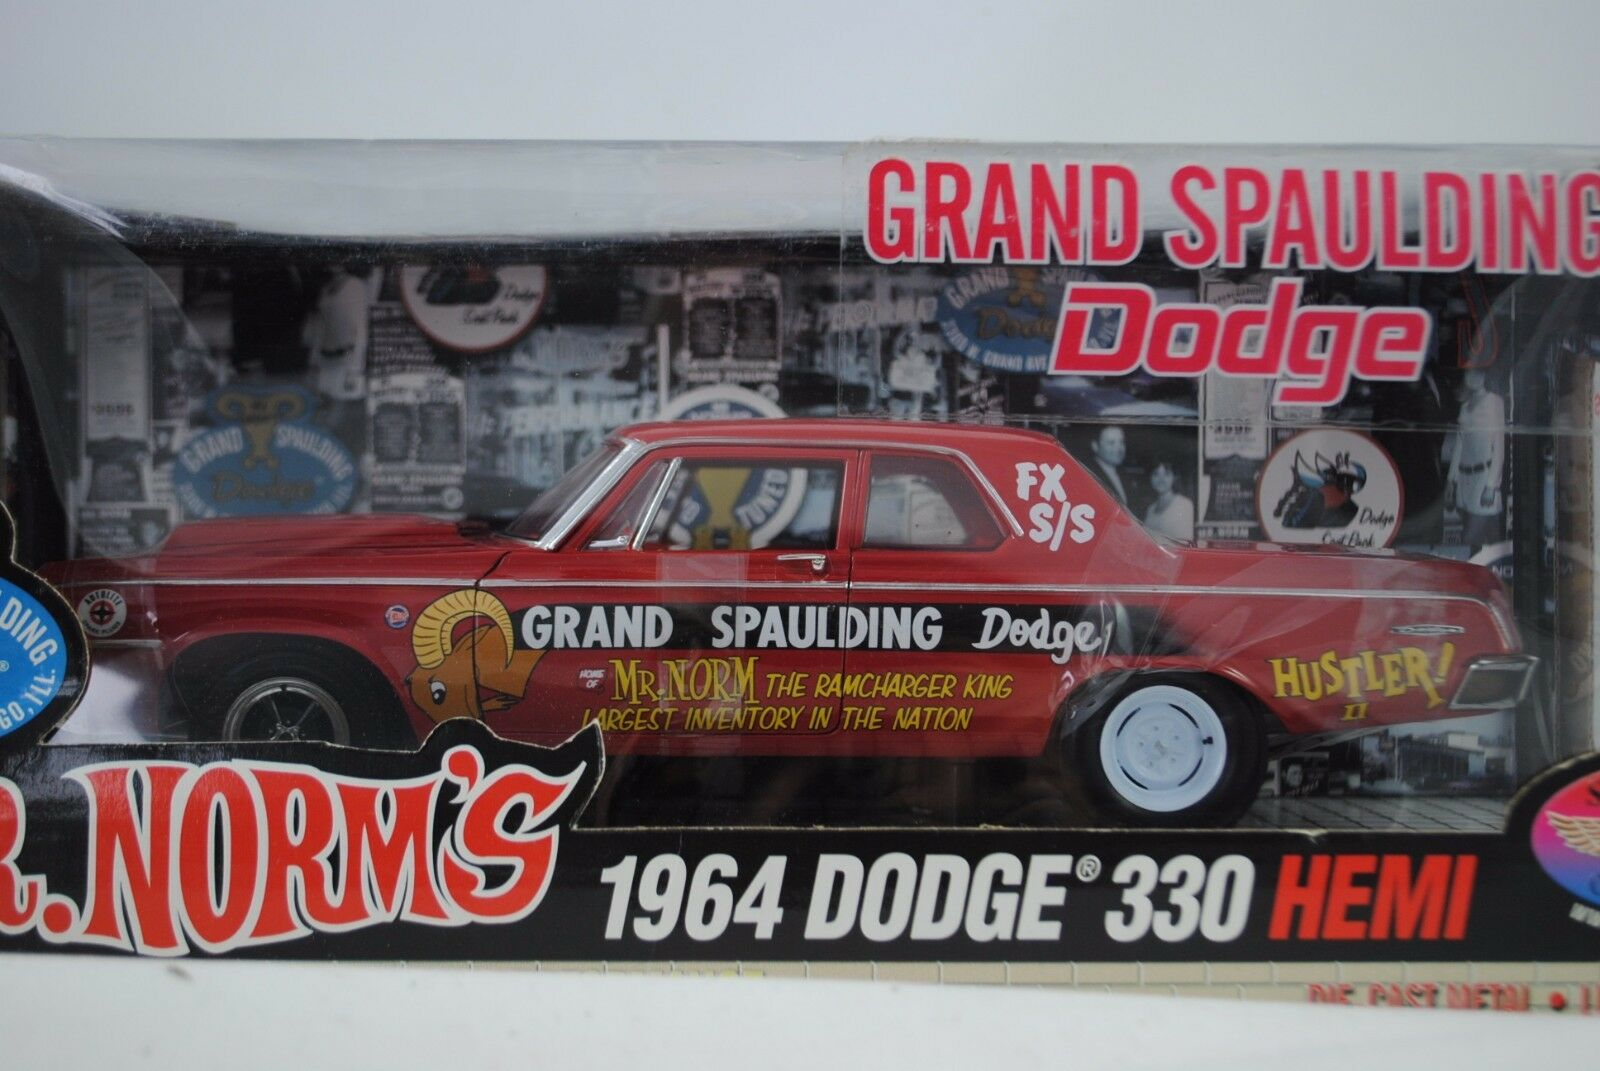 1 18 Highway 61 Supervoiture Coll.  Mr. norms 1964 DODGE 330 Hemi Grand Spaulding    prix raisonnable